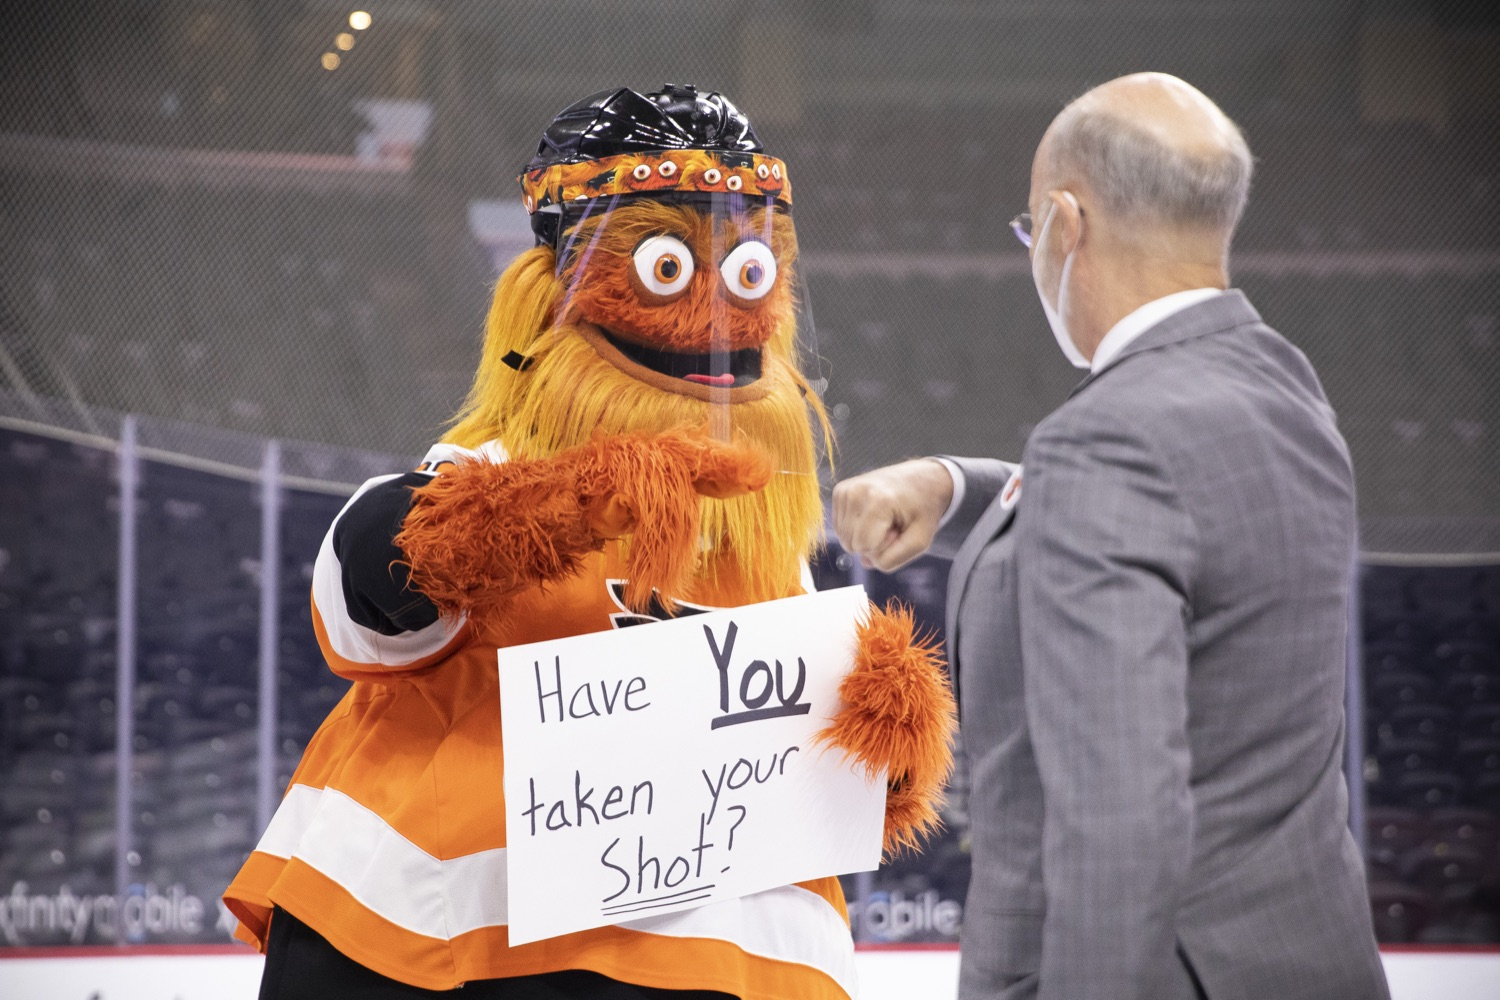 "<a href=""https://filesource.wostreaming.net/commonwealthofpa/photo/18727_gov_vaccines_dz_006.jpg"" target=""_blank"">⇣ Download Photo<br></a>Philadelphia Flyers' mascot Gritty greeting Governor Tom Wolf.   Governor Tom Wolf today visited the Philadelphia Flyers organization at the Wells Fargo Center in Philadelphia to discuss COVID-19 vaccine efforts in Pennsylvania. The Flyers recently launched a comprehensive COVID-19 vaccine campaign, Take Your Shot, encouraging Pennsylvanians to get vaccinated.  Philadelphia, PA  MAY 3, 2021"